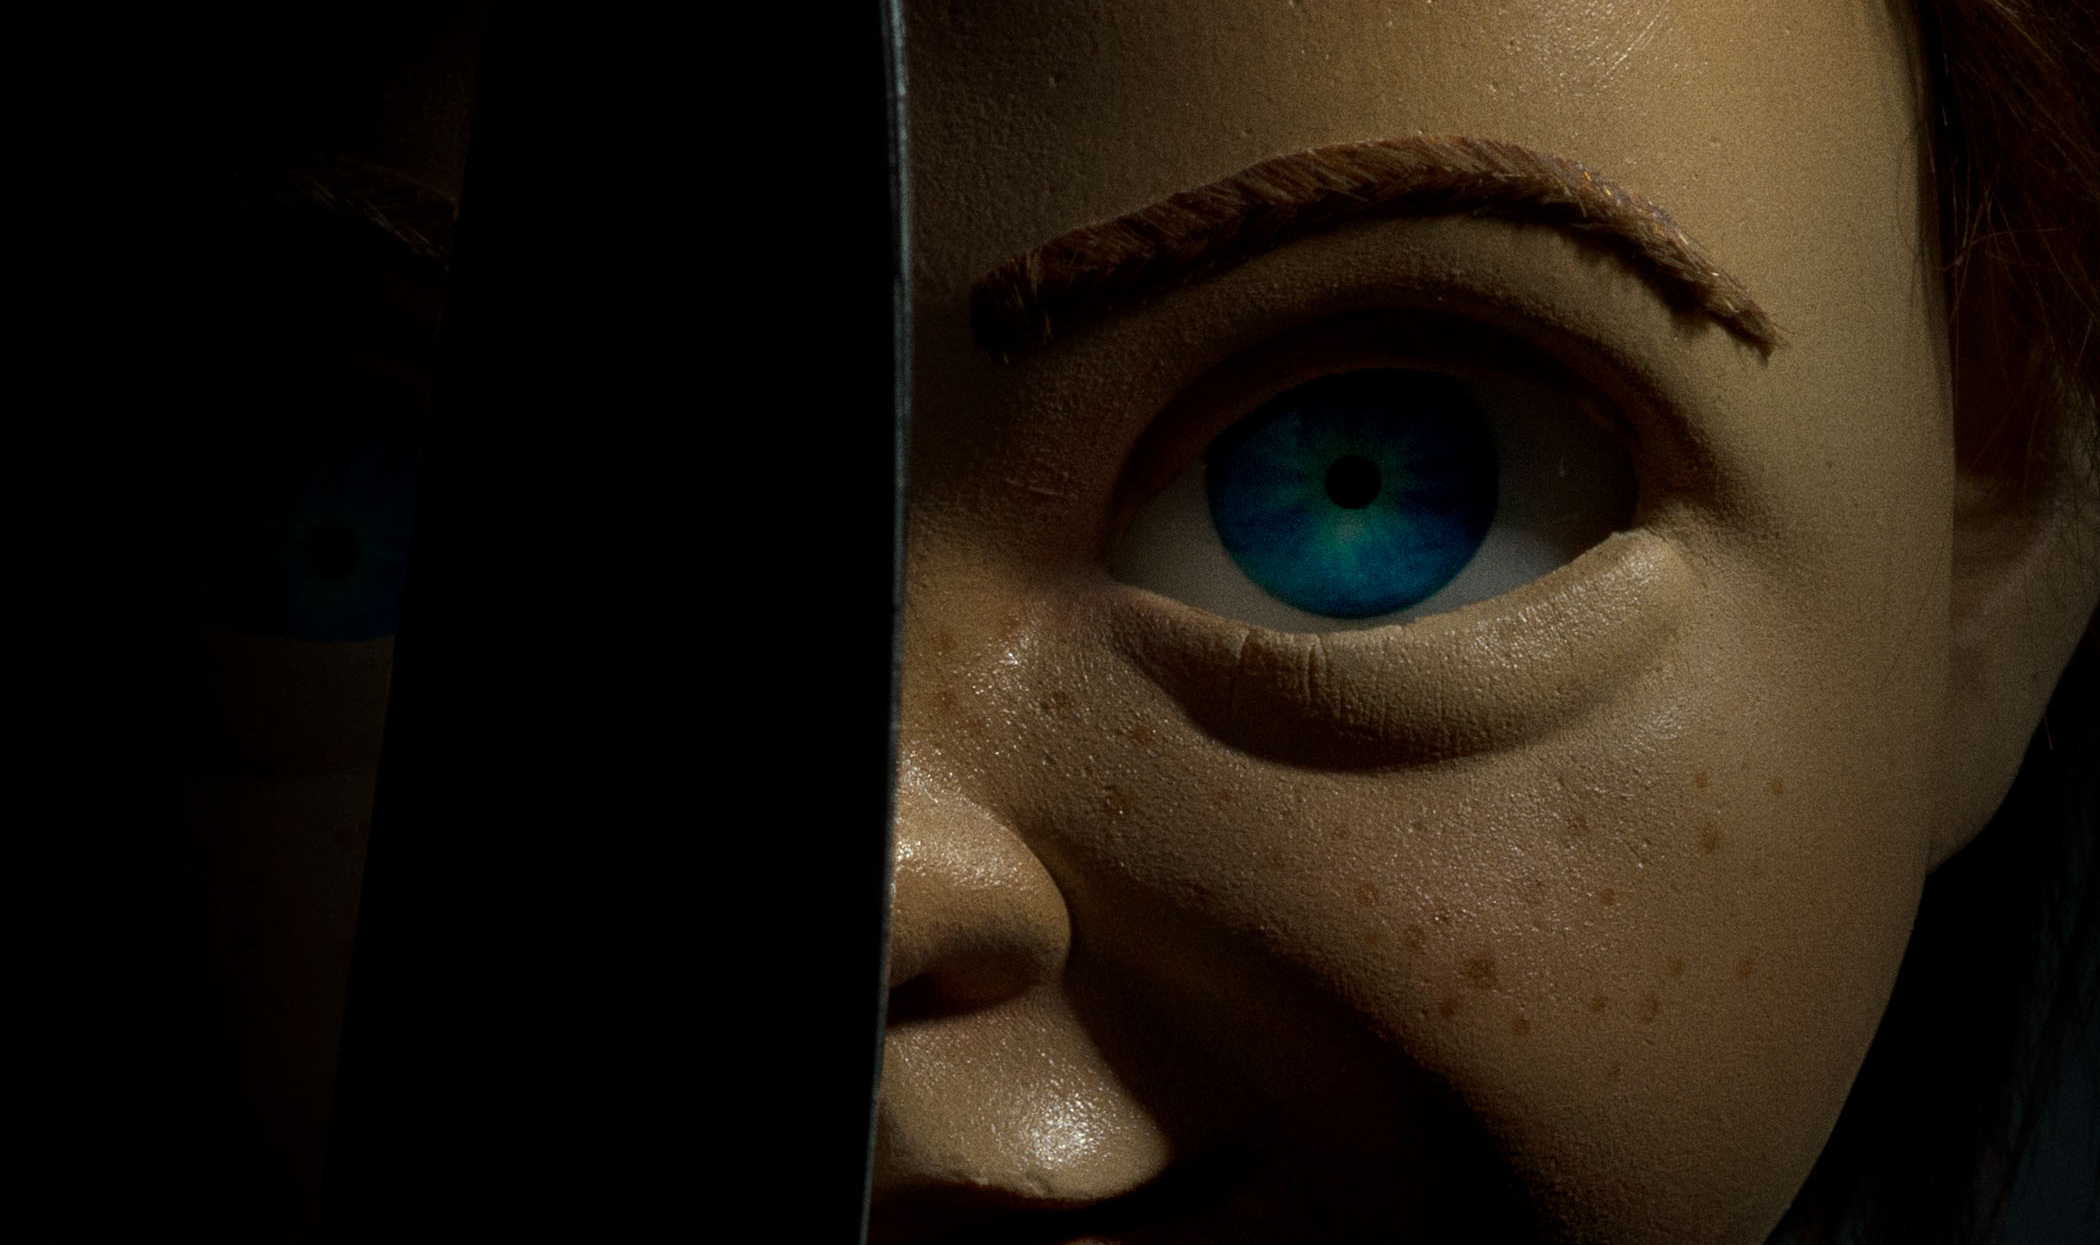 Chucky's back in 'Child's Play' reboot